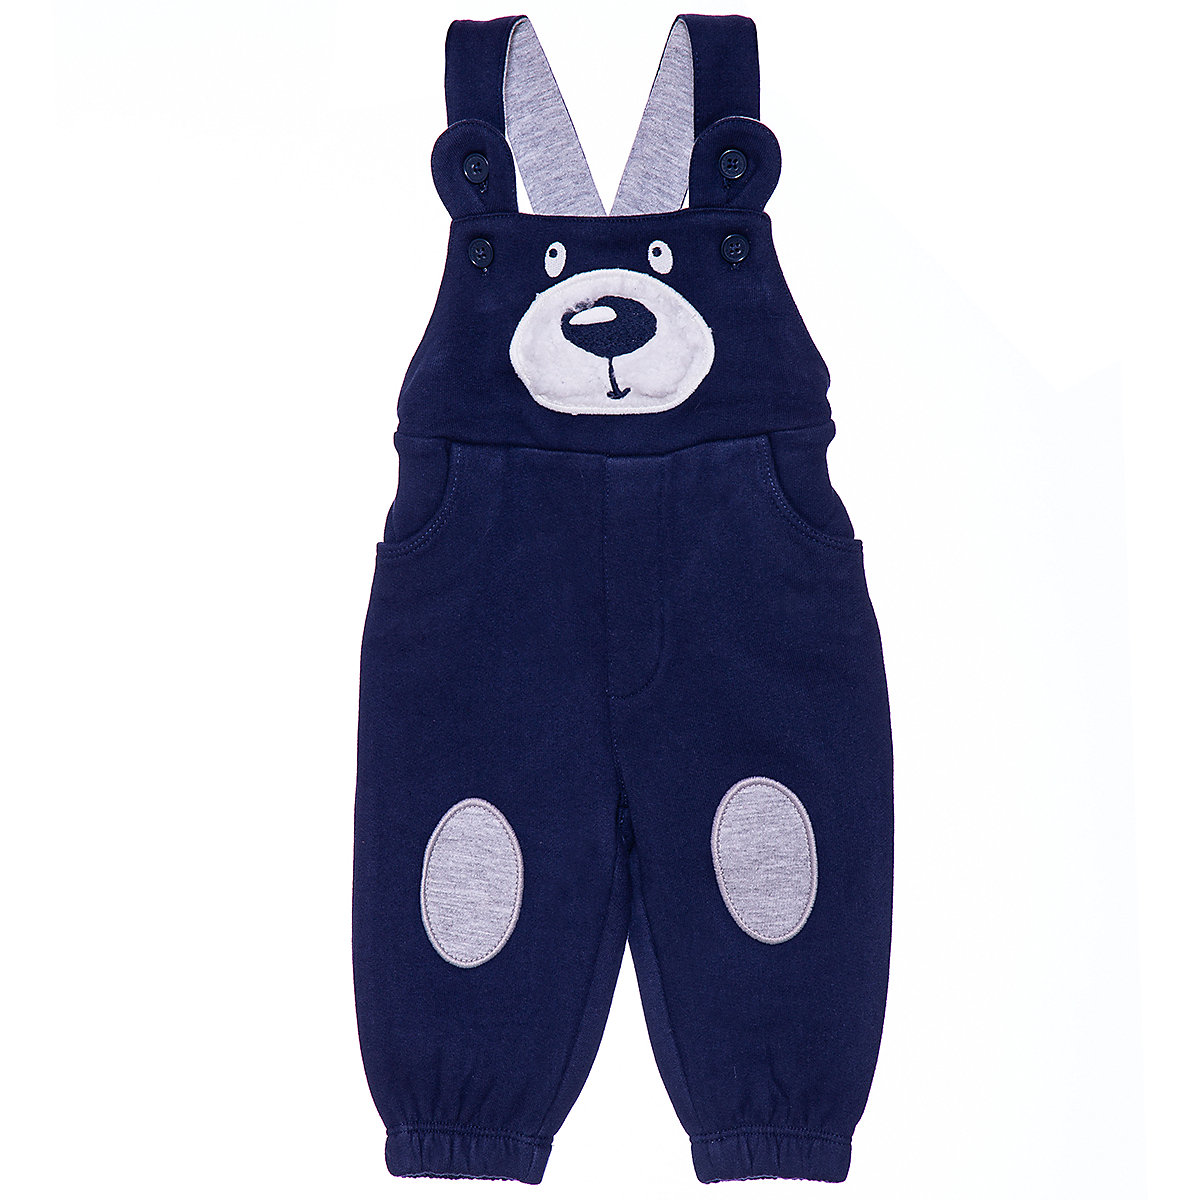 Original Marines Pants 9500973 children's clothing bib overalls for boys girls boy girl baby